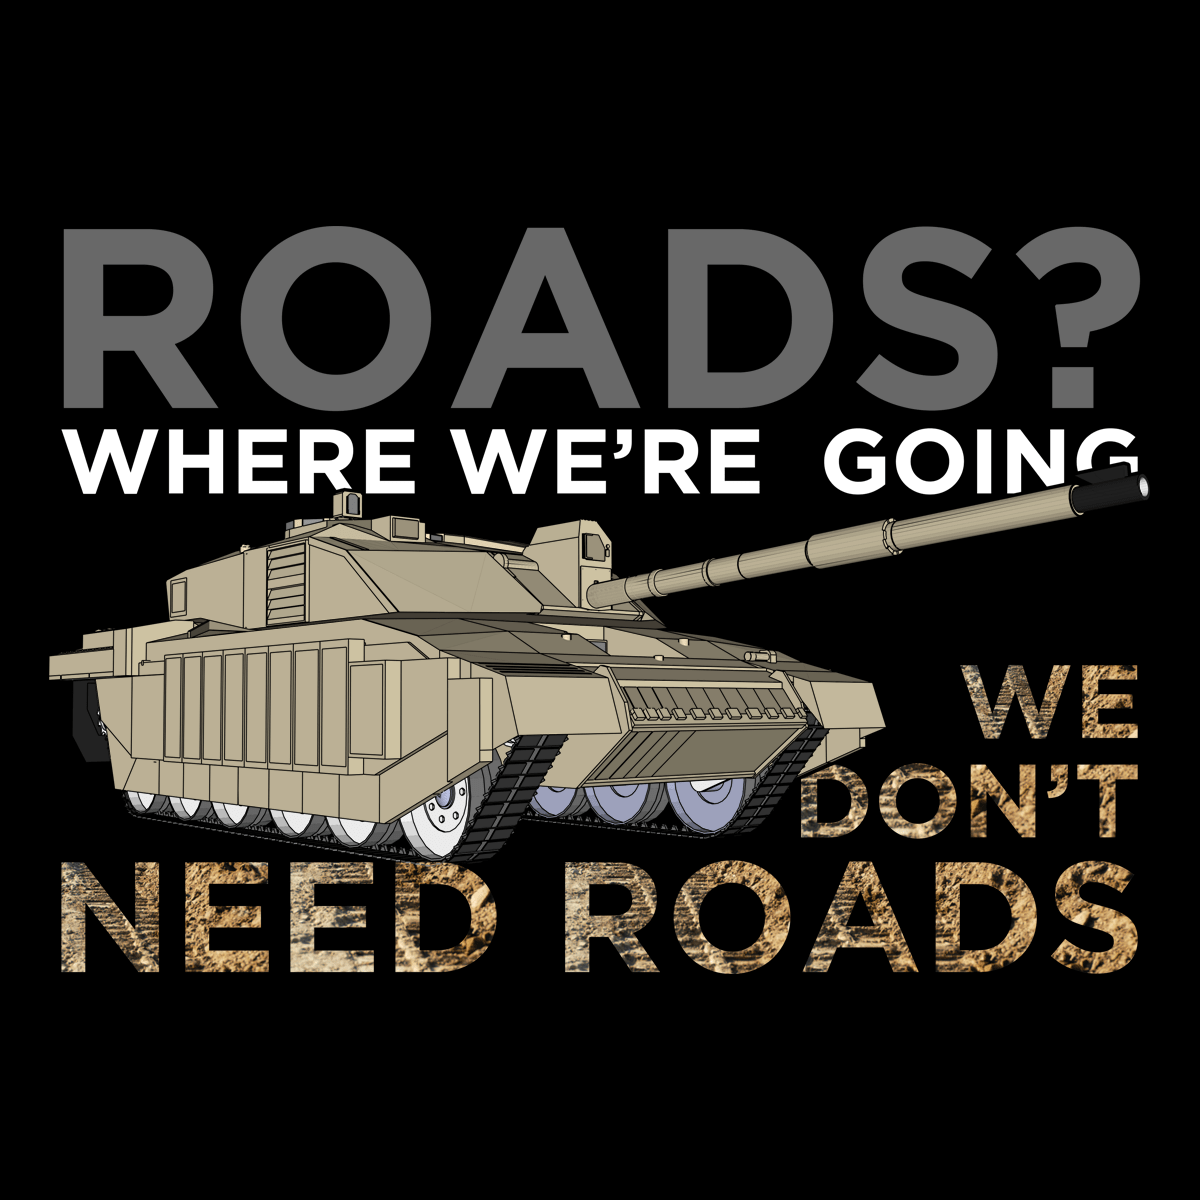 Who Needs Roads T Shirt